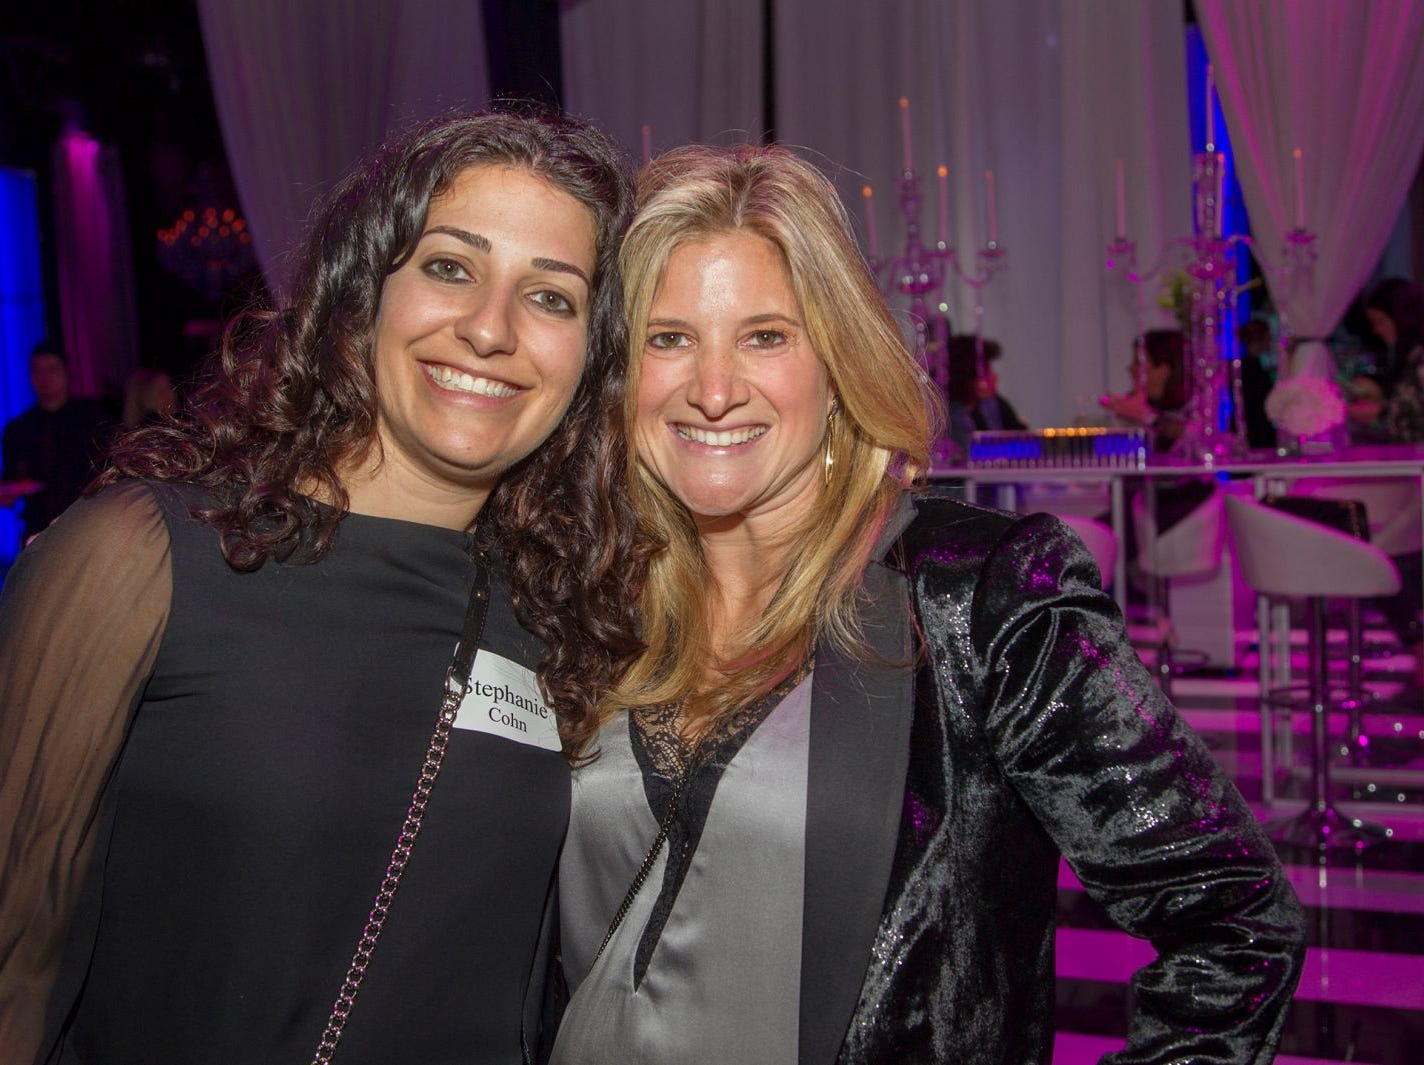 Stephanie Cohn, Jillian Somberg. Jewish Federation of Northern New Jersey held its first Girl's Night Out dance party at Space in Englewood. 01/24/2019